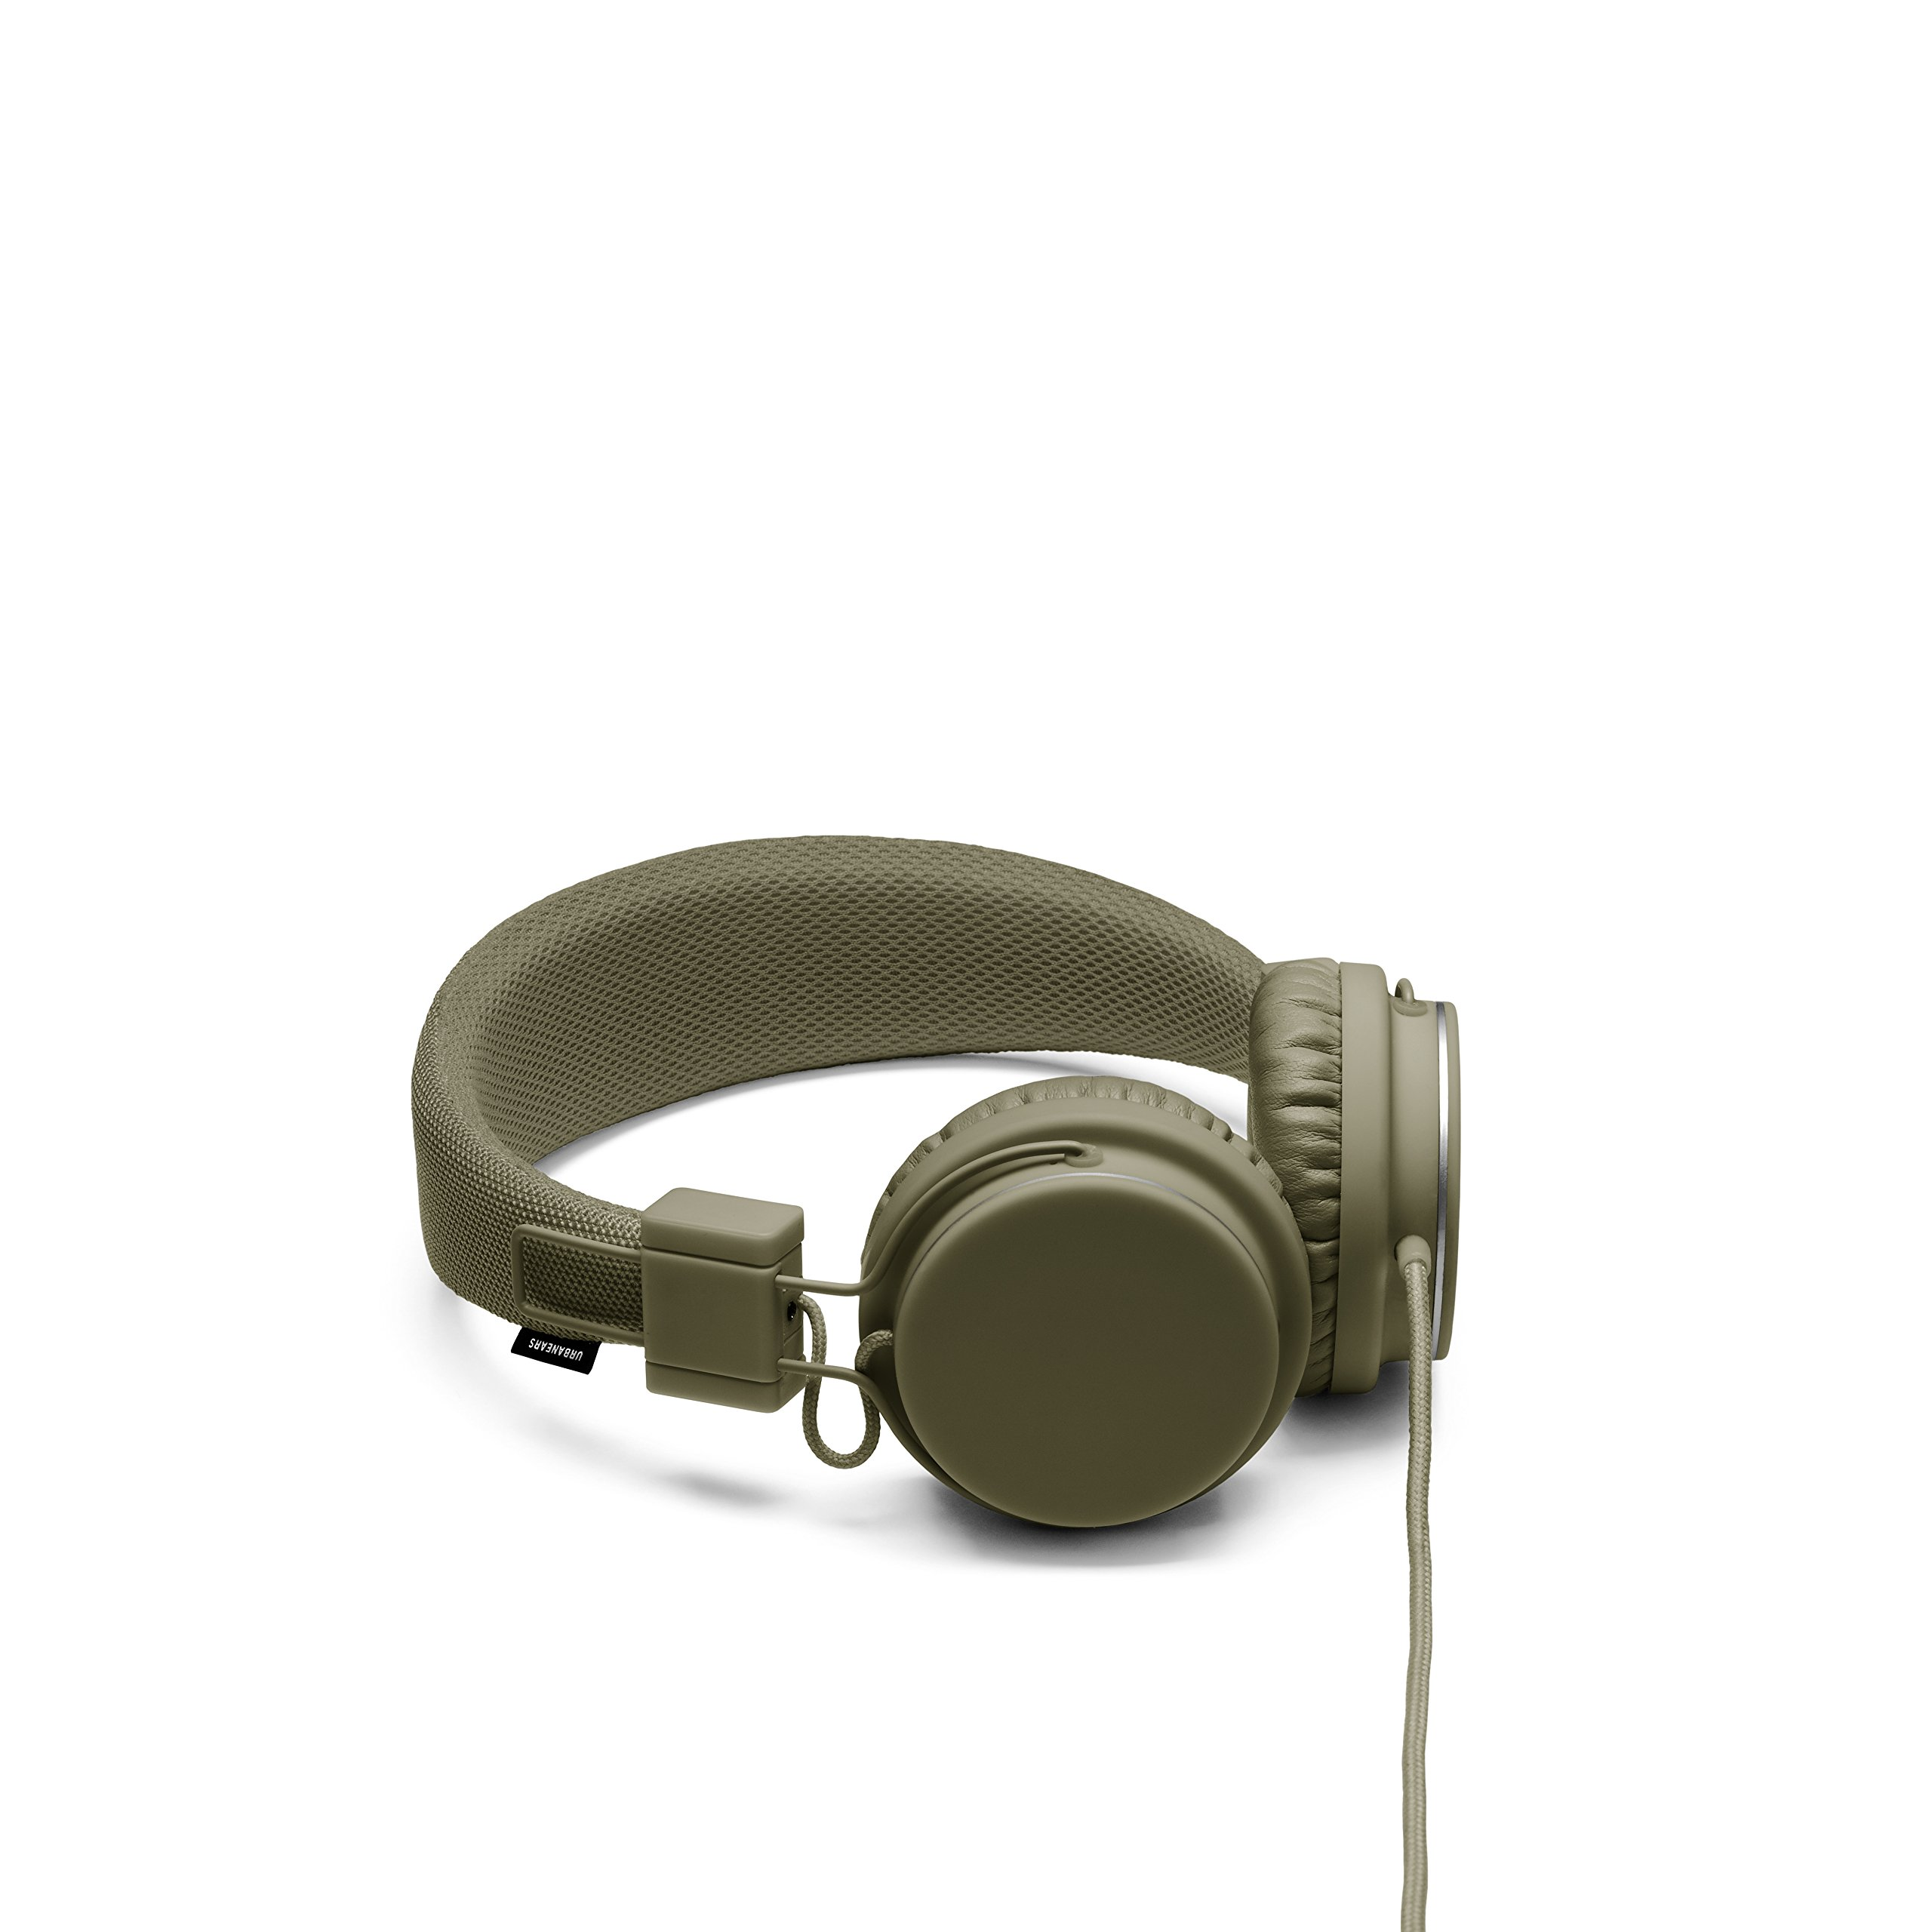 Urbanears Plattan On-Ear Headphones, Moss (4090849) by UrbanEars